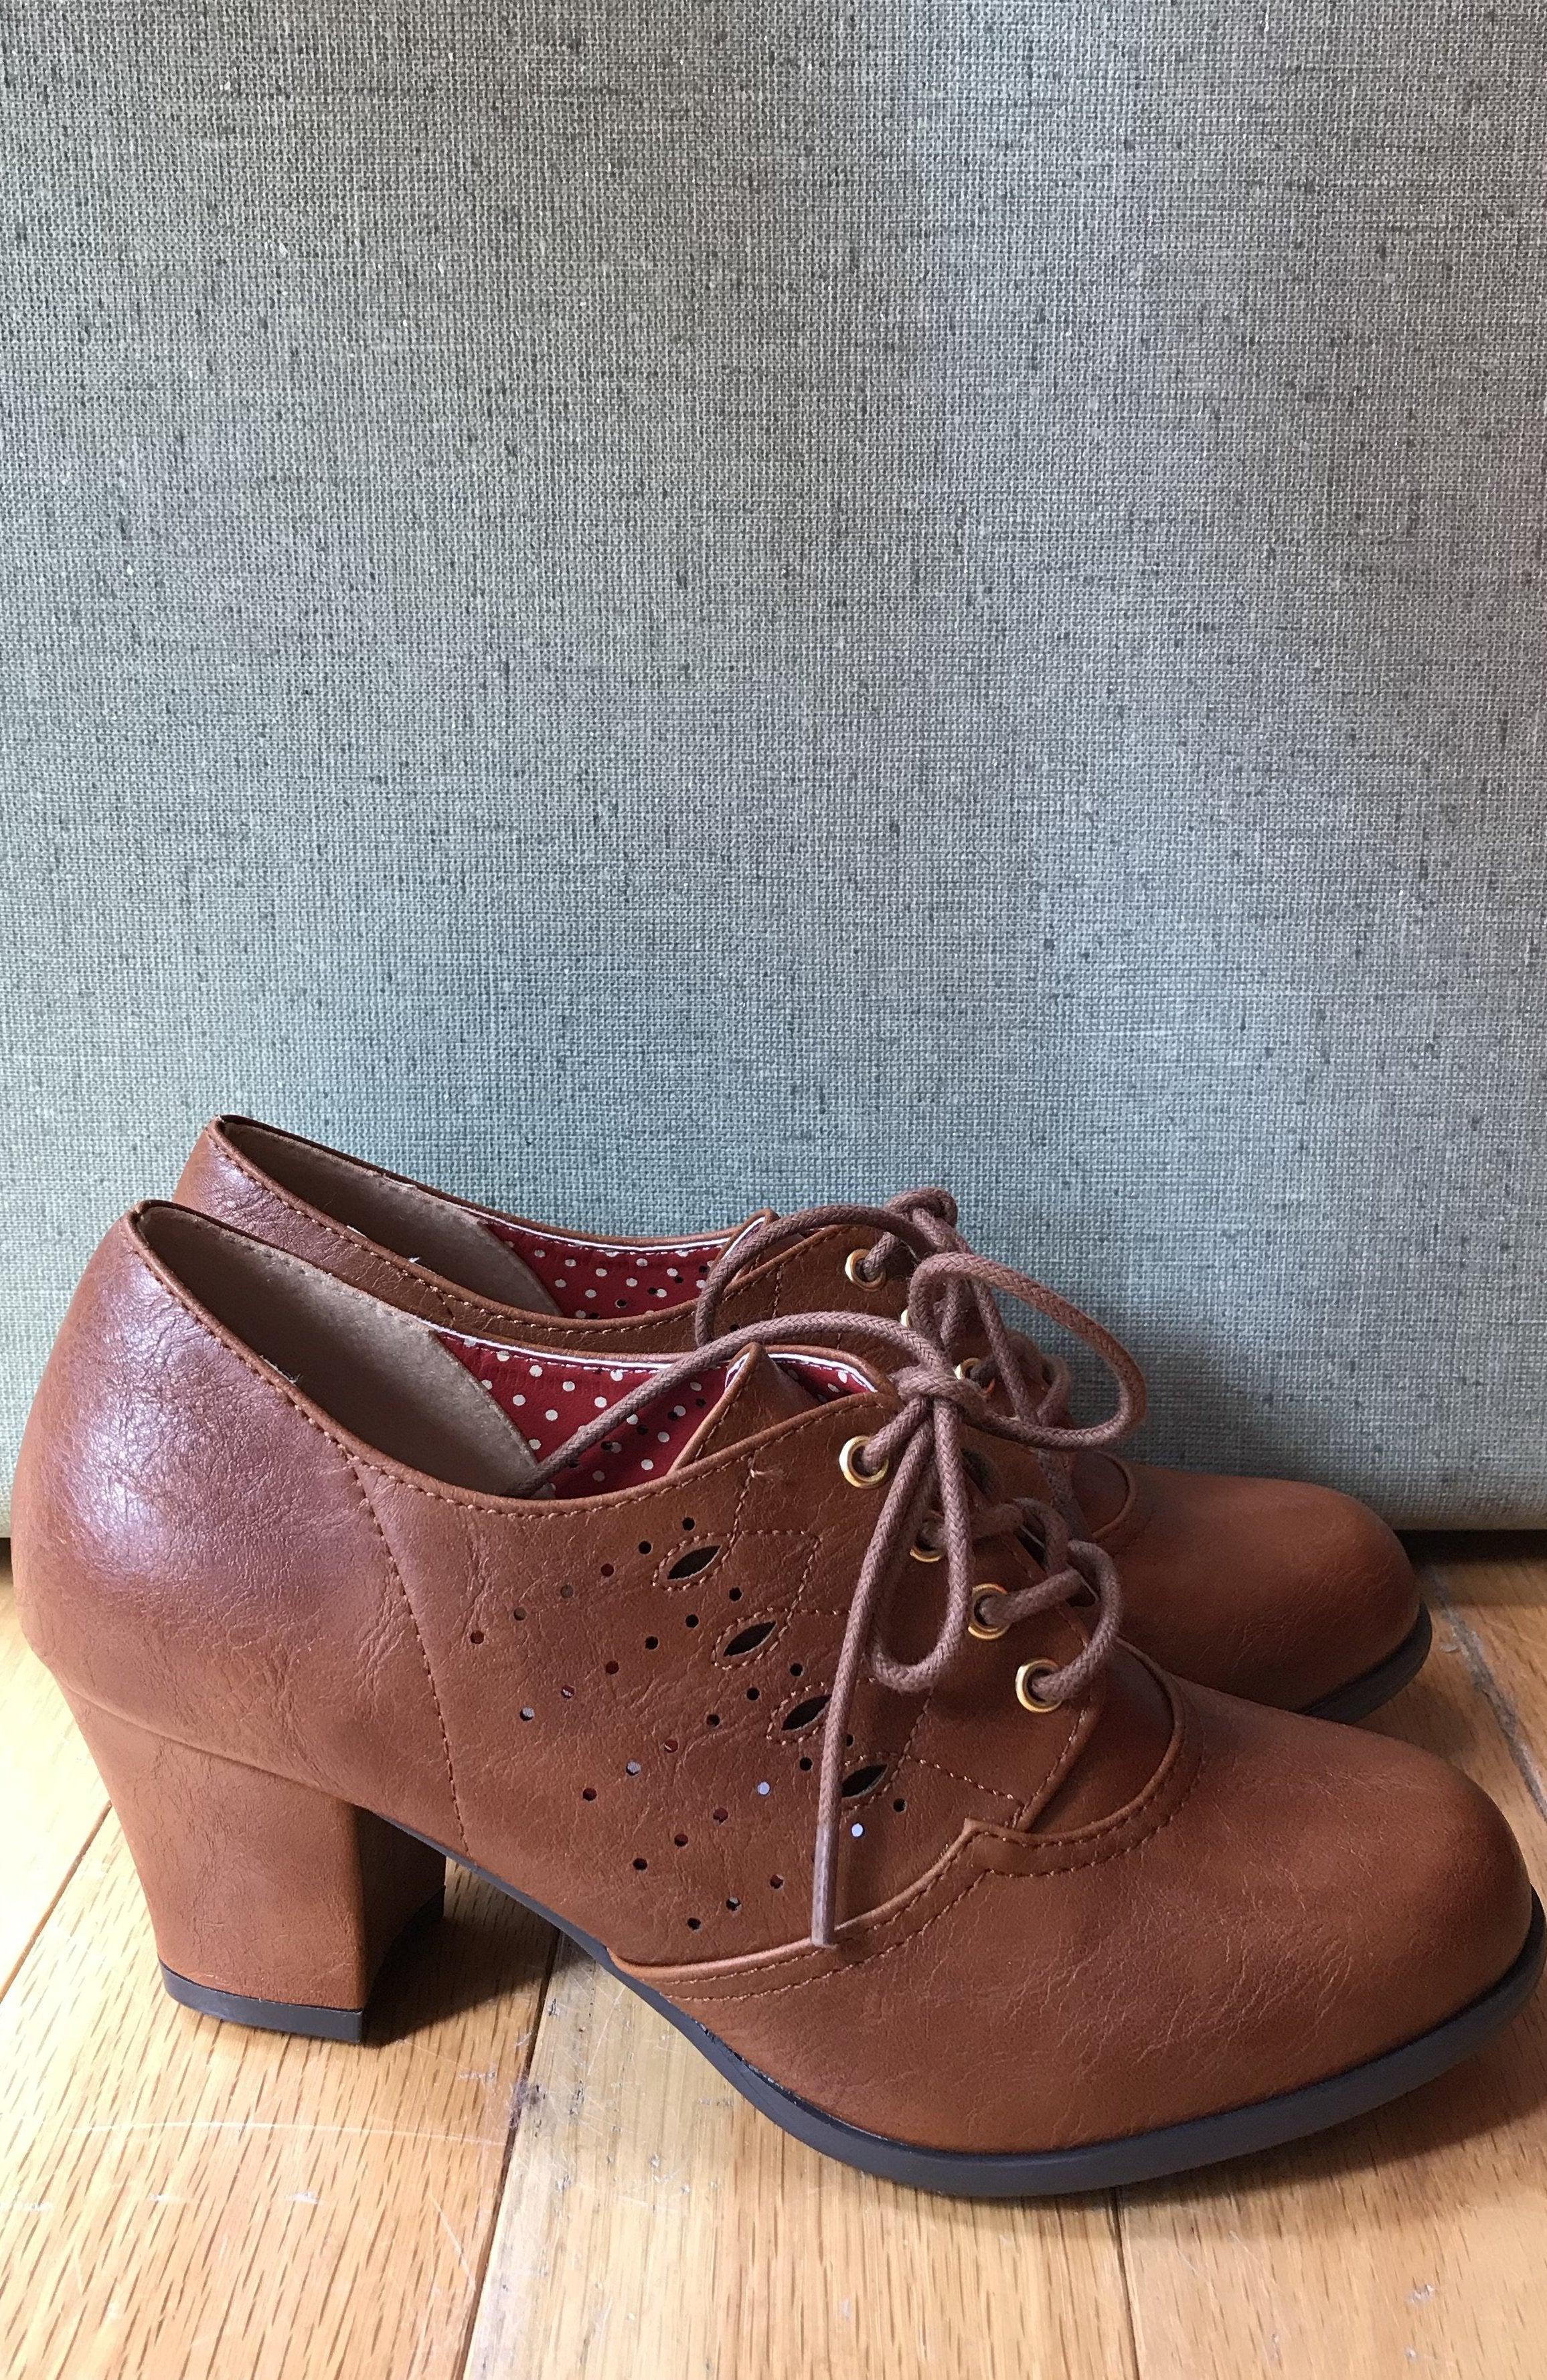 Rosie Lace-Up Heeled Oxford Shoes in Tan by B.A.I.T.